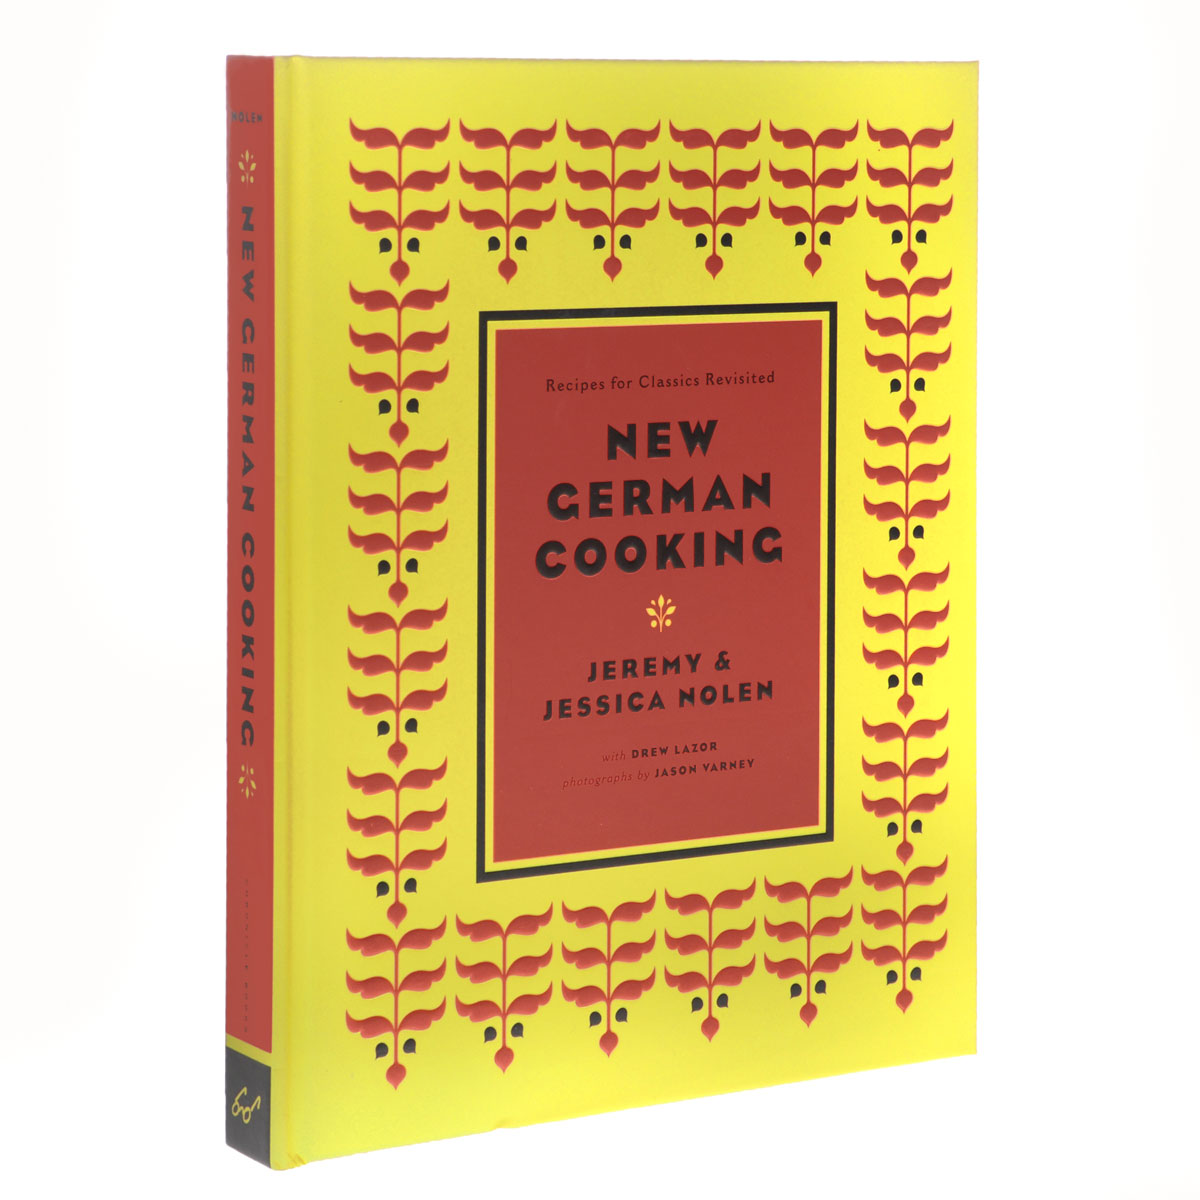 New German Cooking: Recipes for Classics Revisited new german cooking recipes for classics revisited